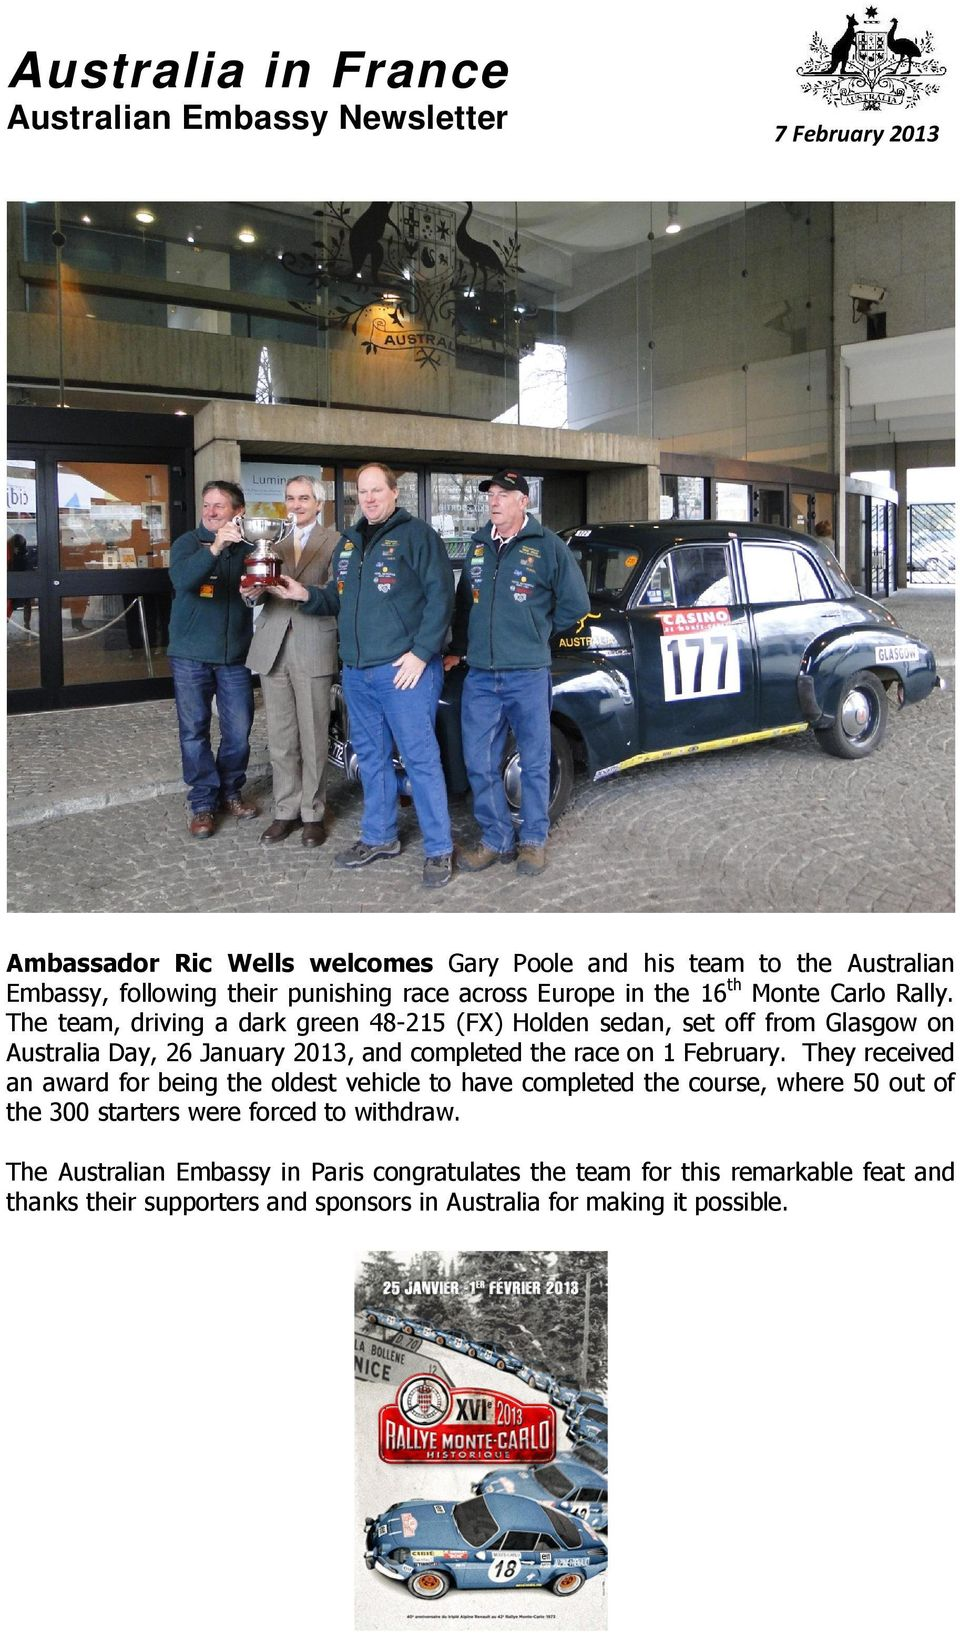 The team, driving a dark green 48-215 (FX) Holden sedan, set off from Glasgow on Australia Day, 26 January 2013, and completed the race on 1 February.